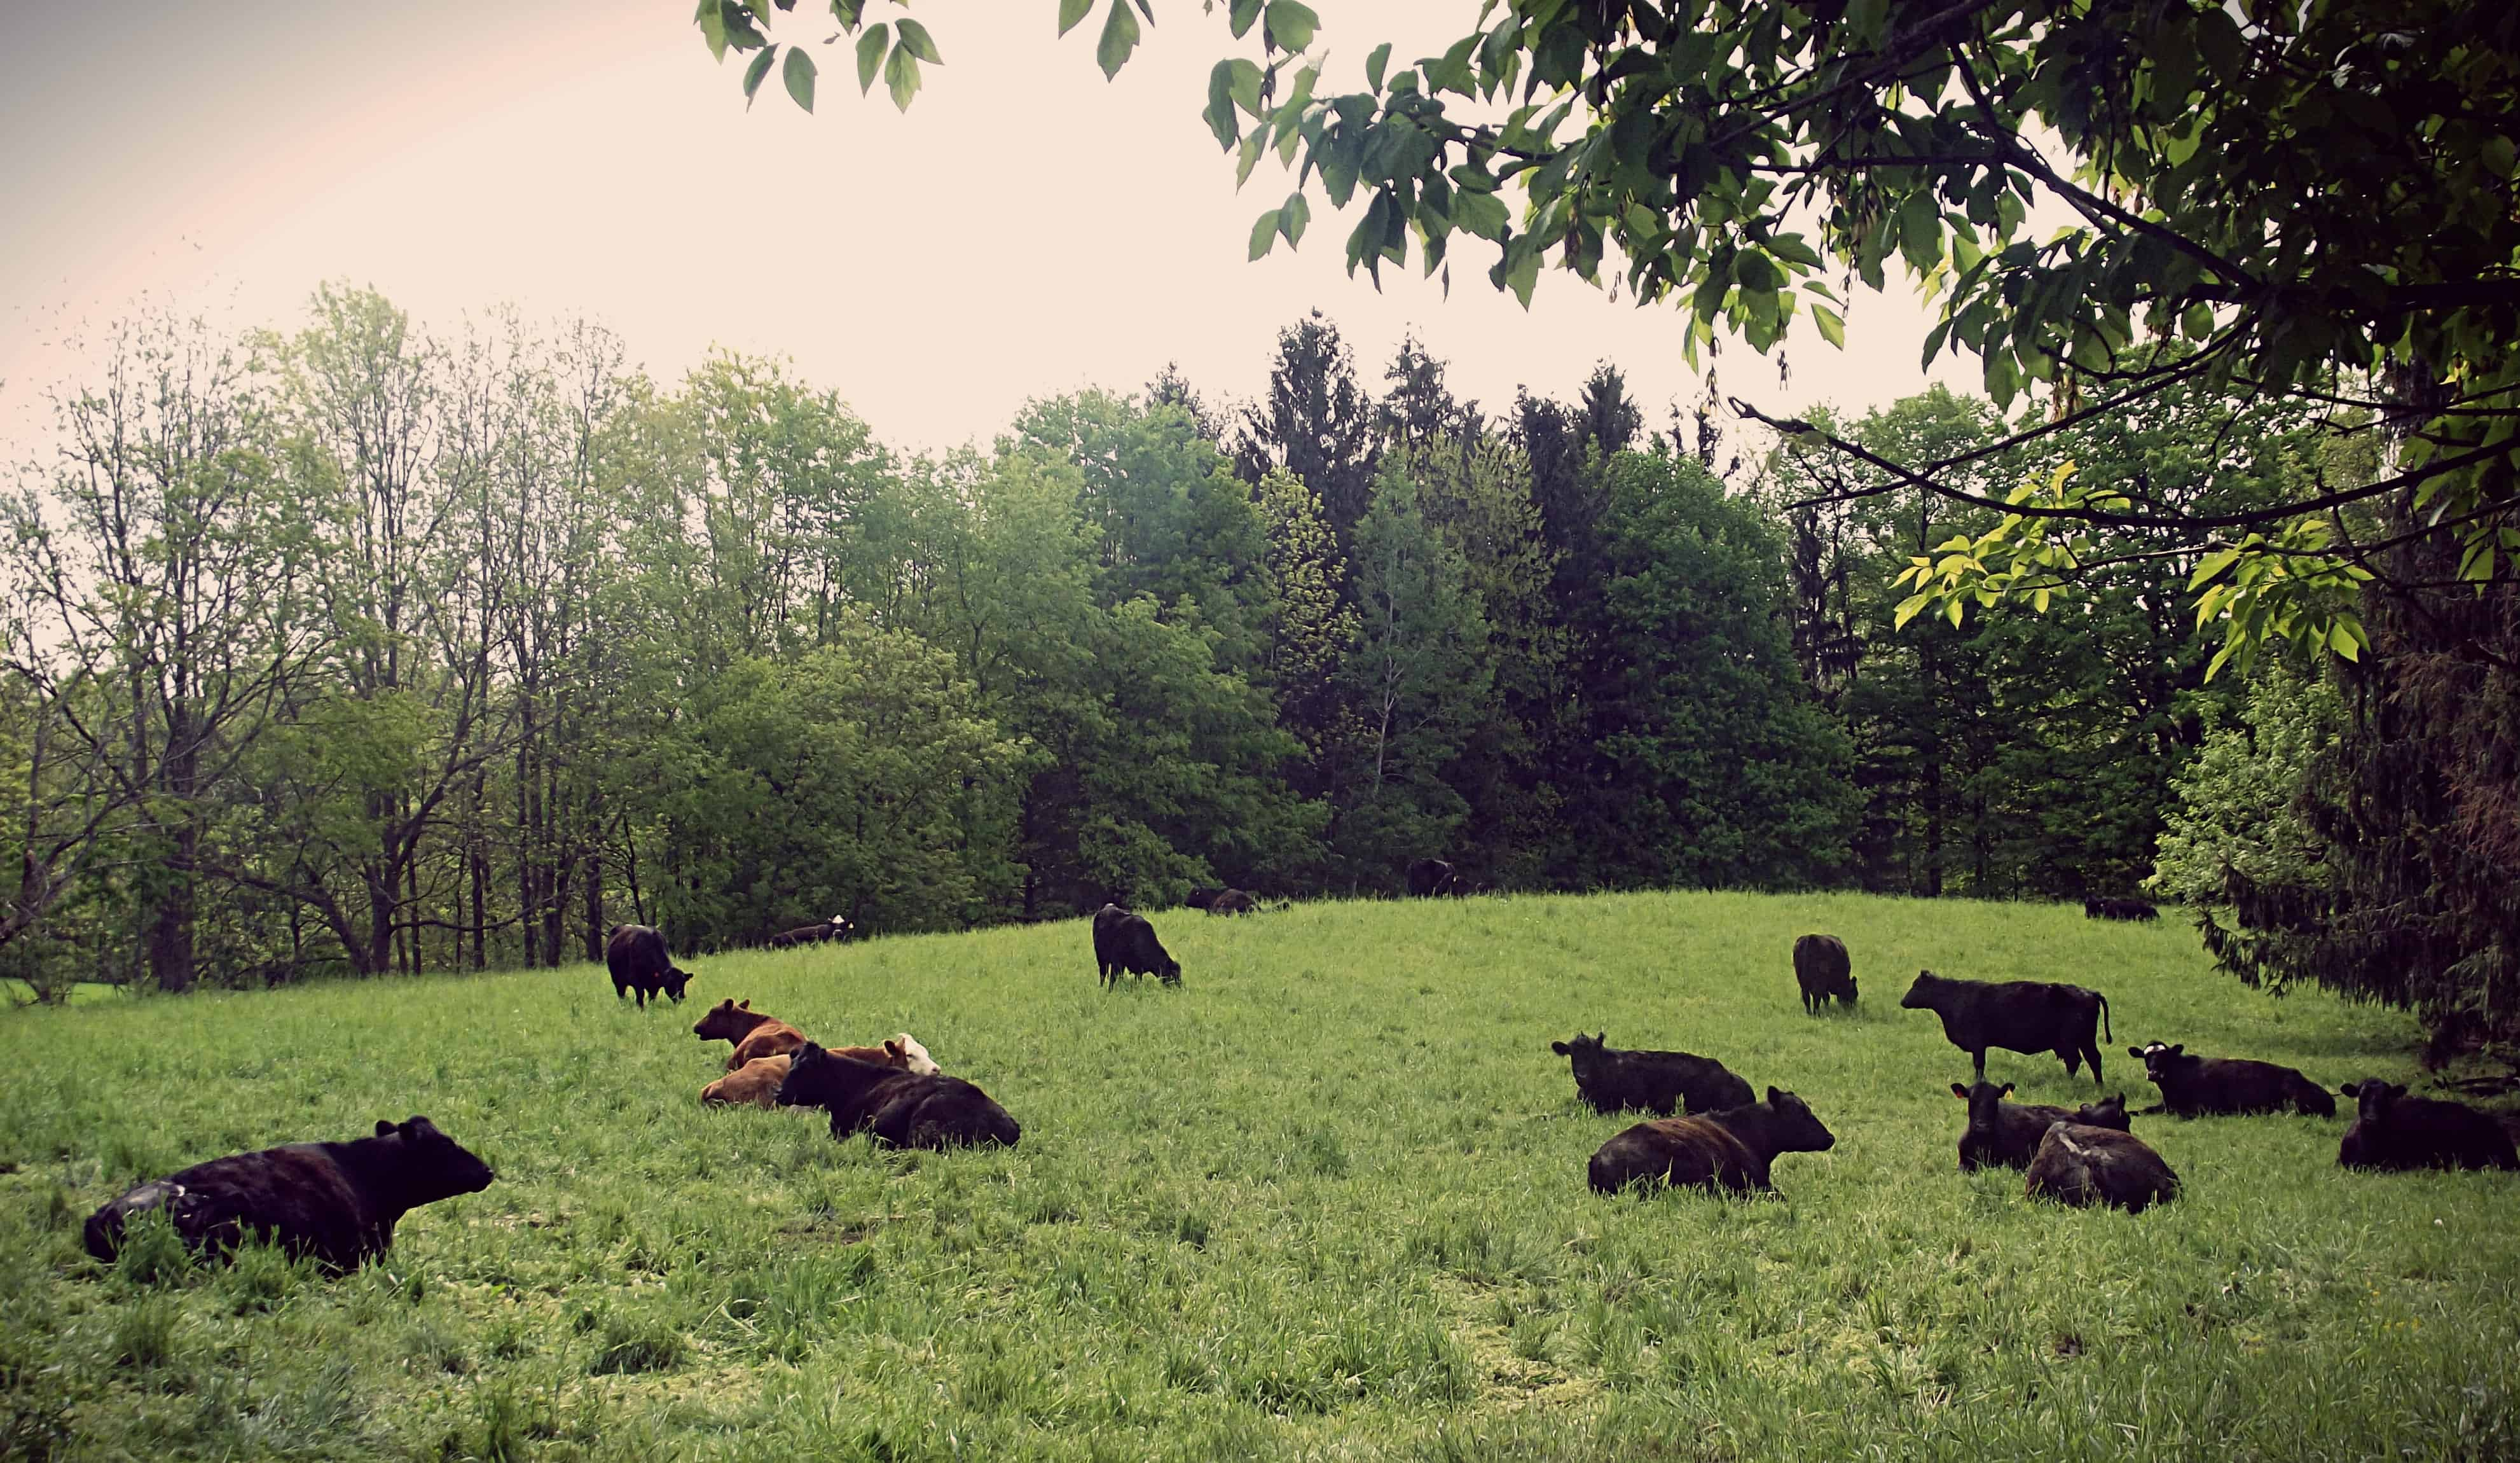 Cranky cow? Tips to stay safe